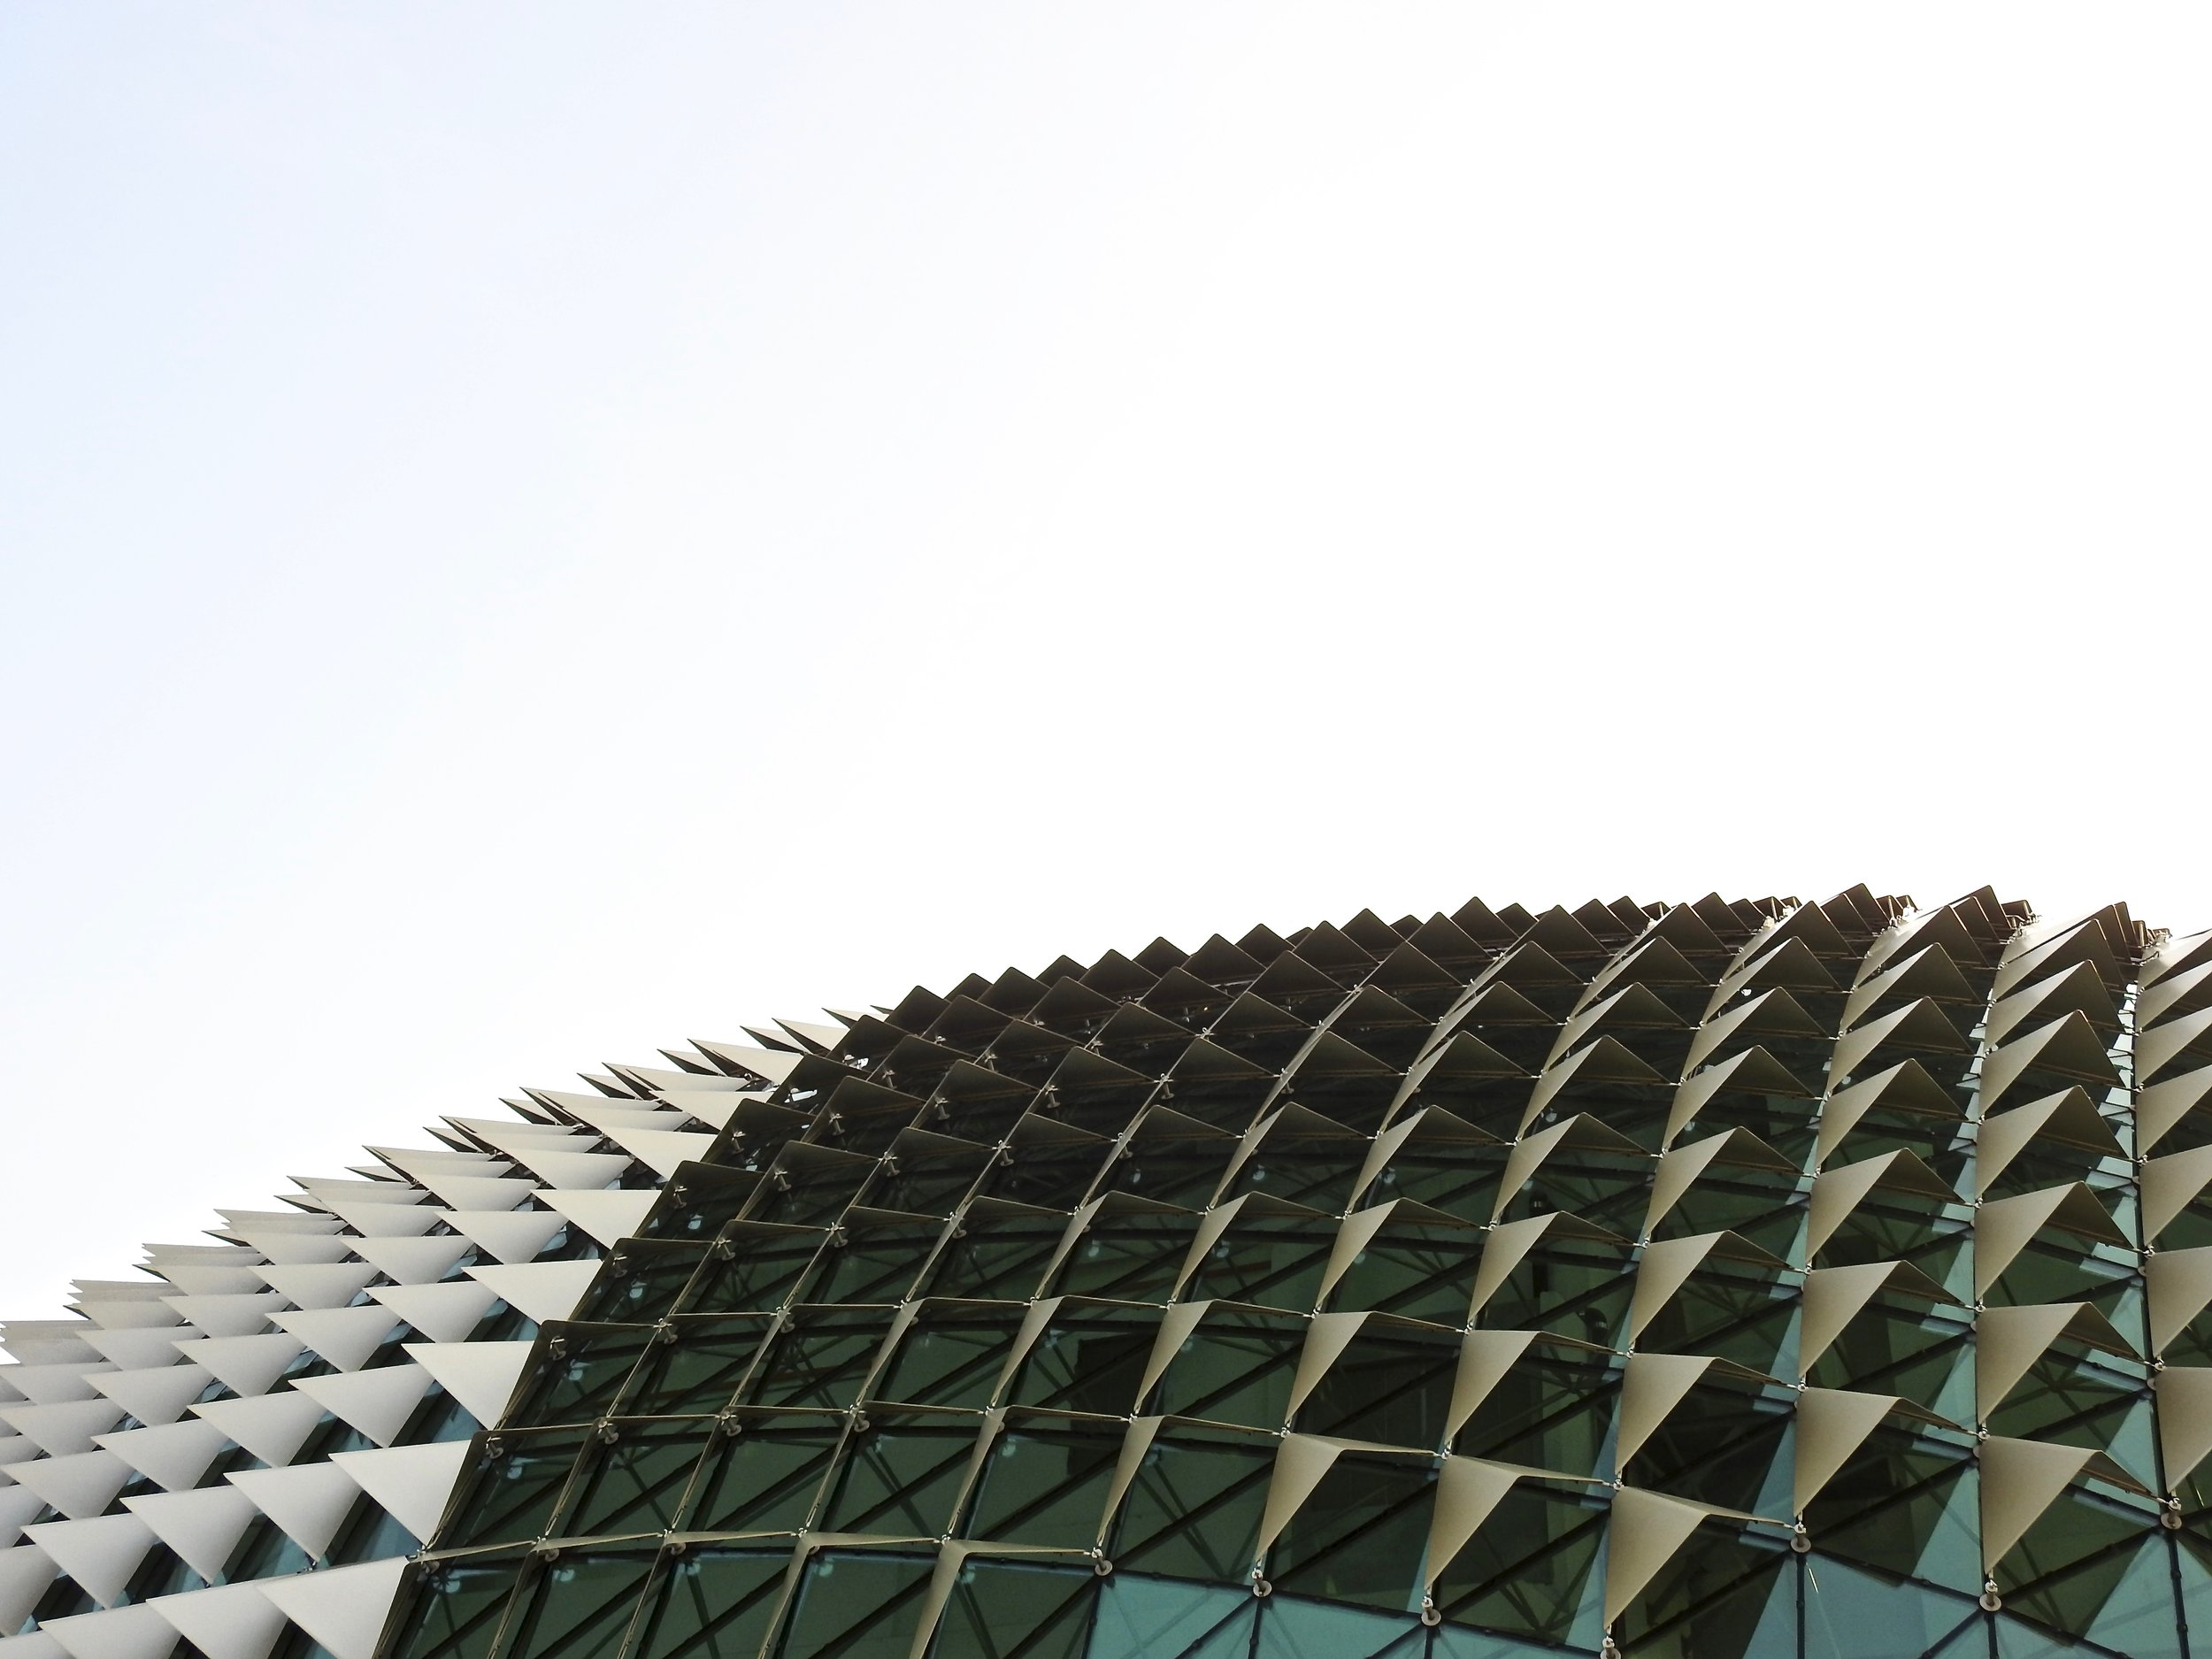 The Esplanade Theatre in Singapore is shaped like a durian. Photo: (C) Remko Tanis